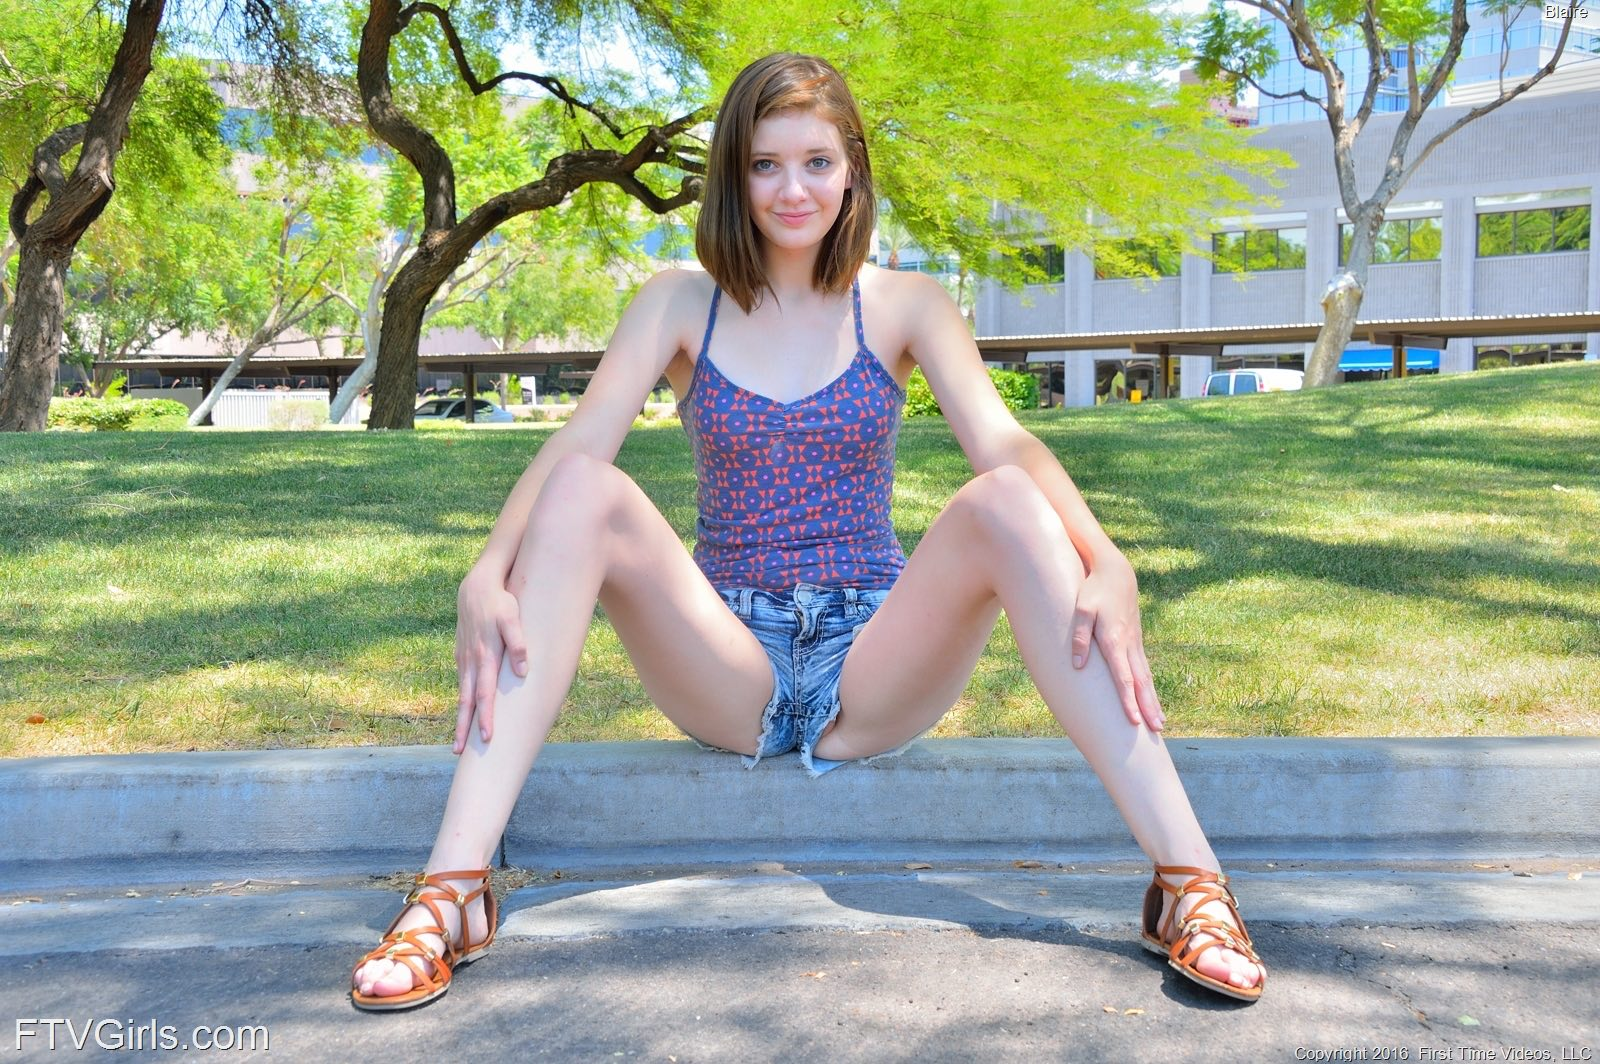 Blaire In Between The Legs By Ftv-Girls 15 Nude Photos -3828